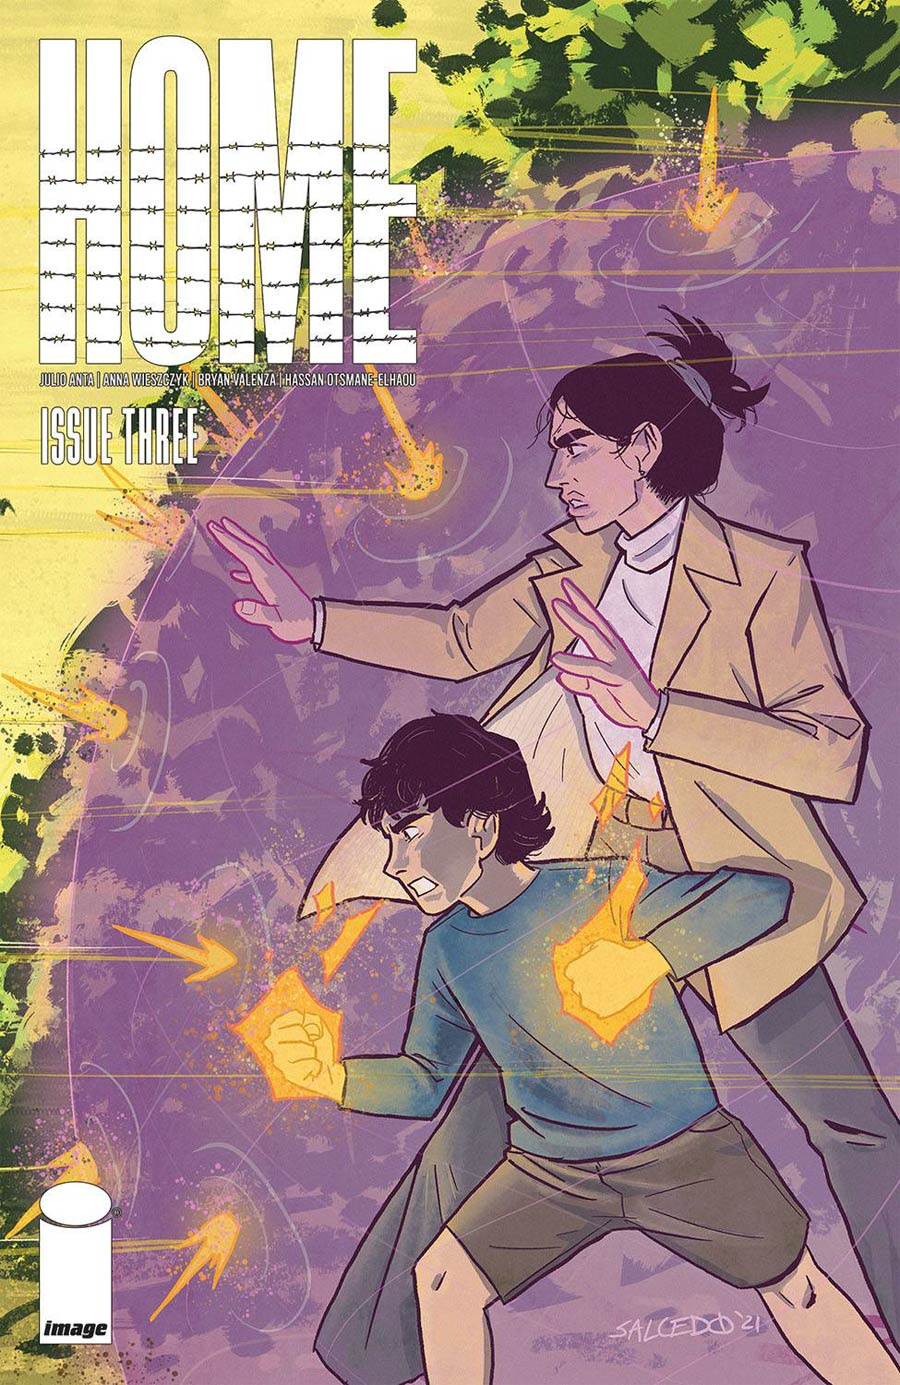 Home (Image Comics) #3 Cover B Variant Jacoby Salcedo Cover